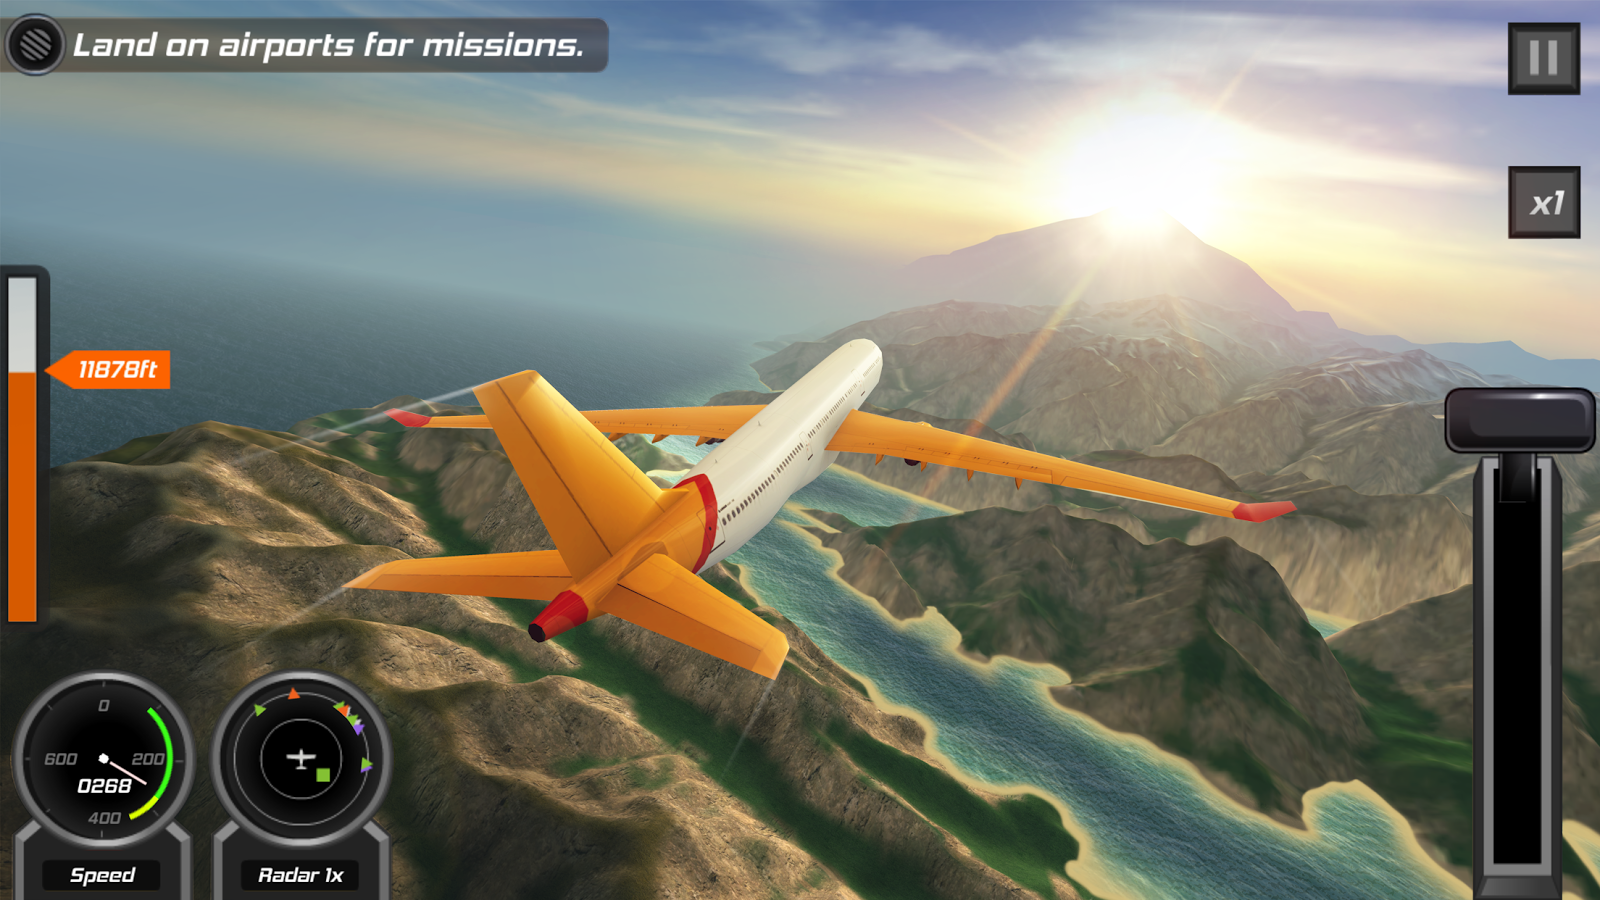 Play Free Online Games - Take to the Skies - Agame.com